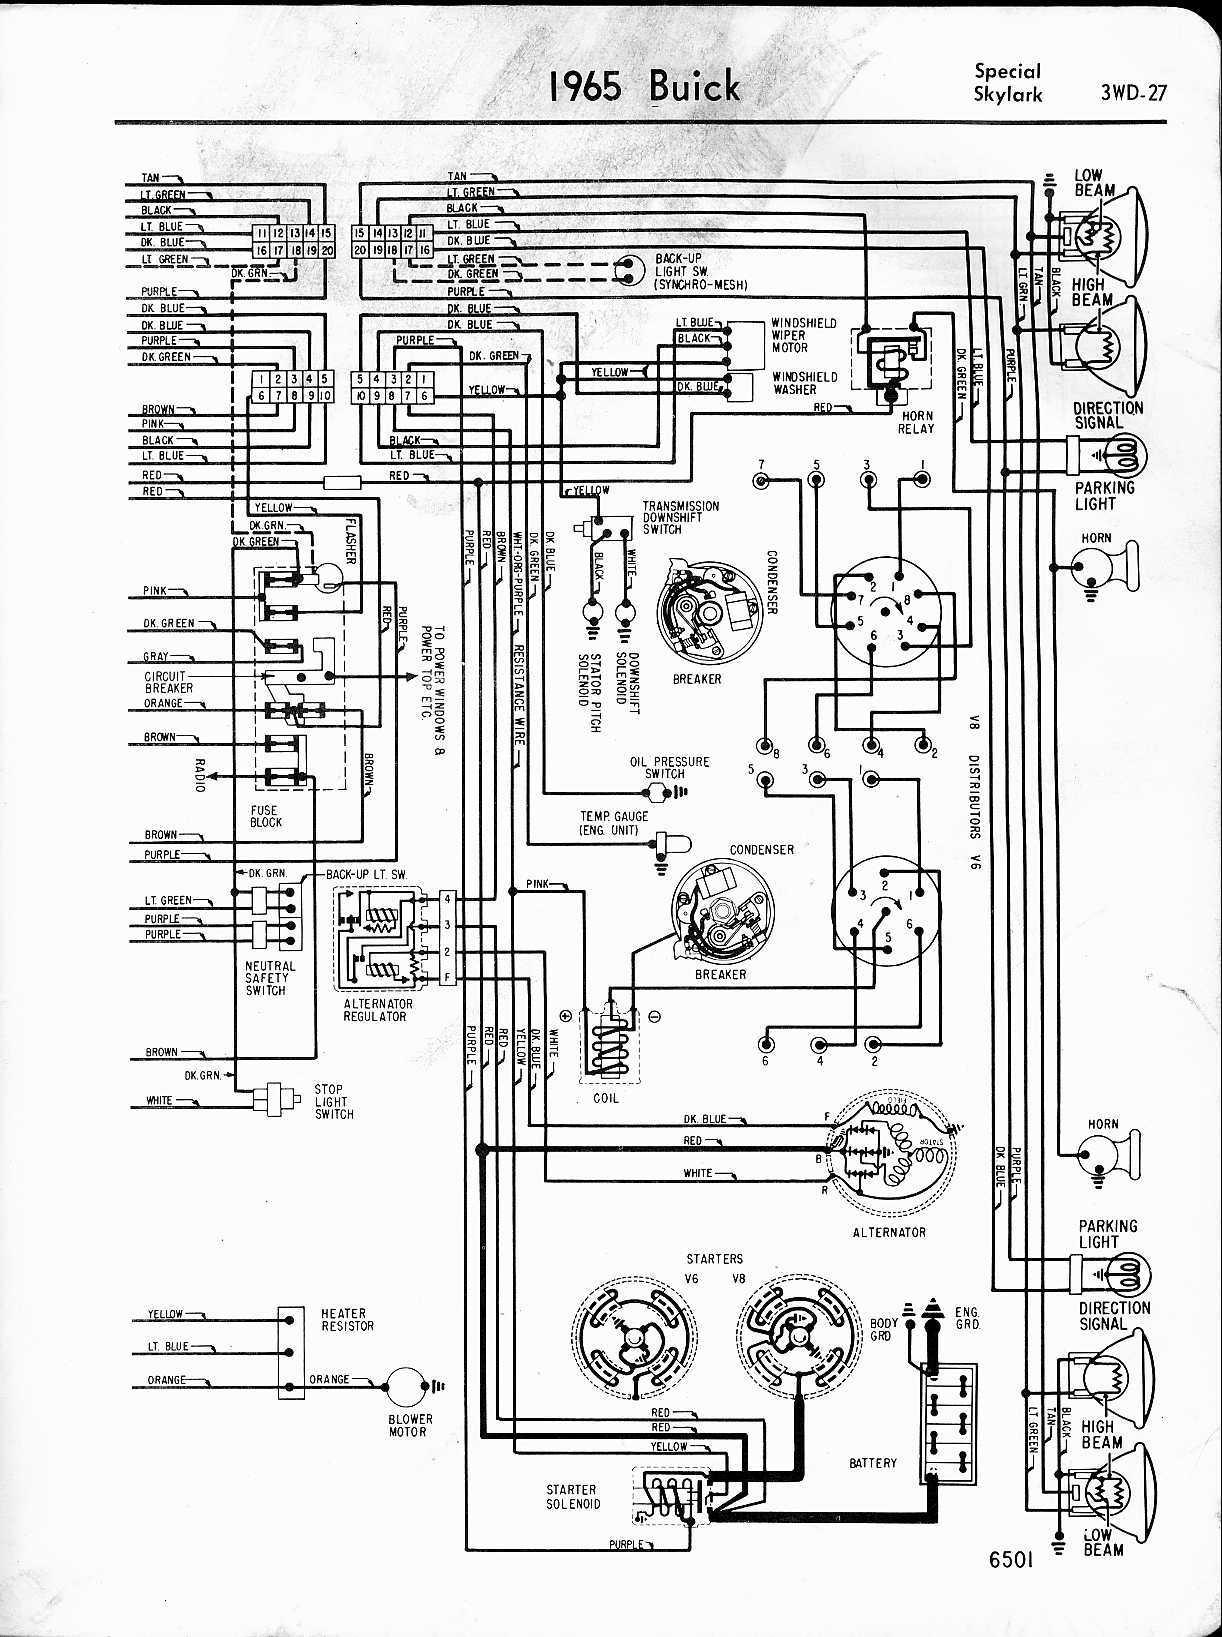 hight resolution of buick wiring diagrams 1957 1965 1988 buick lesabre wiring diagram 1965 special skylark right